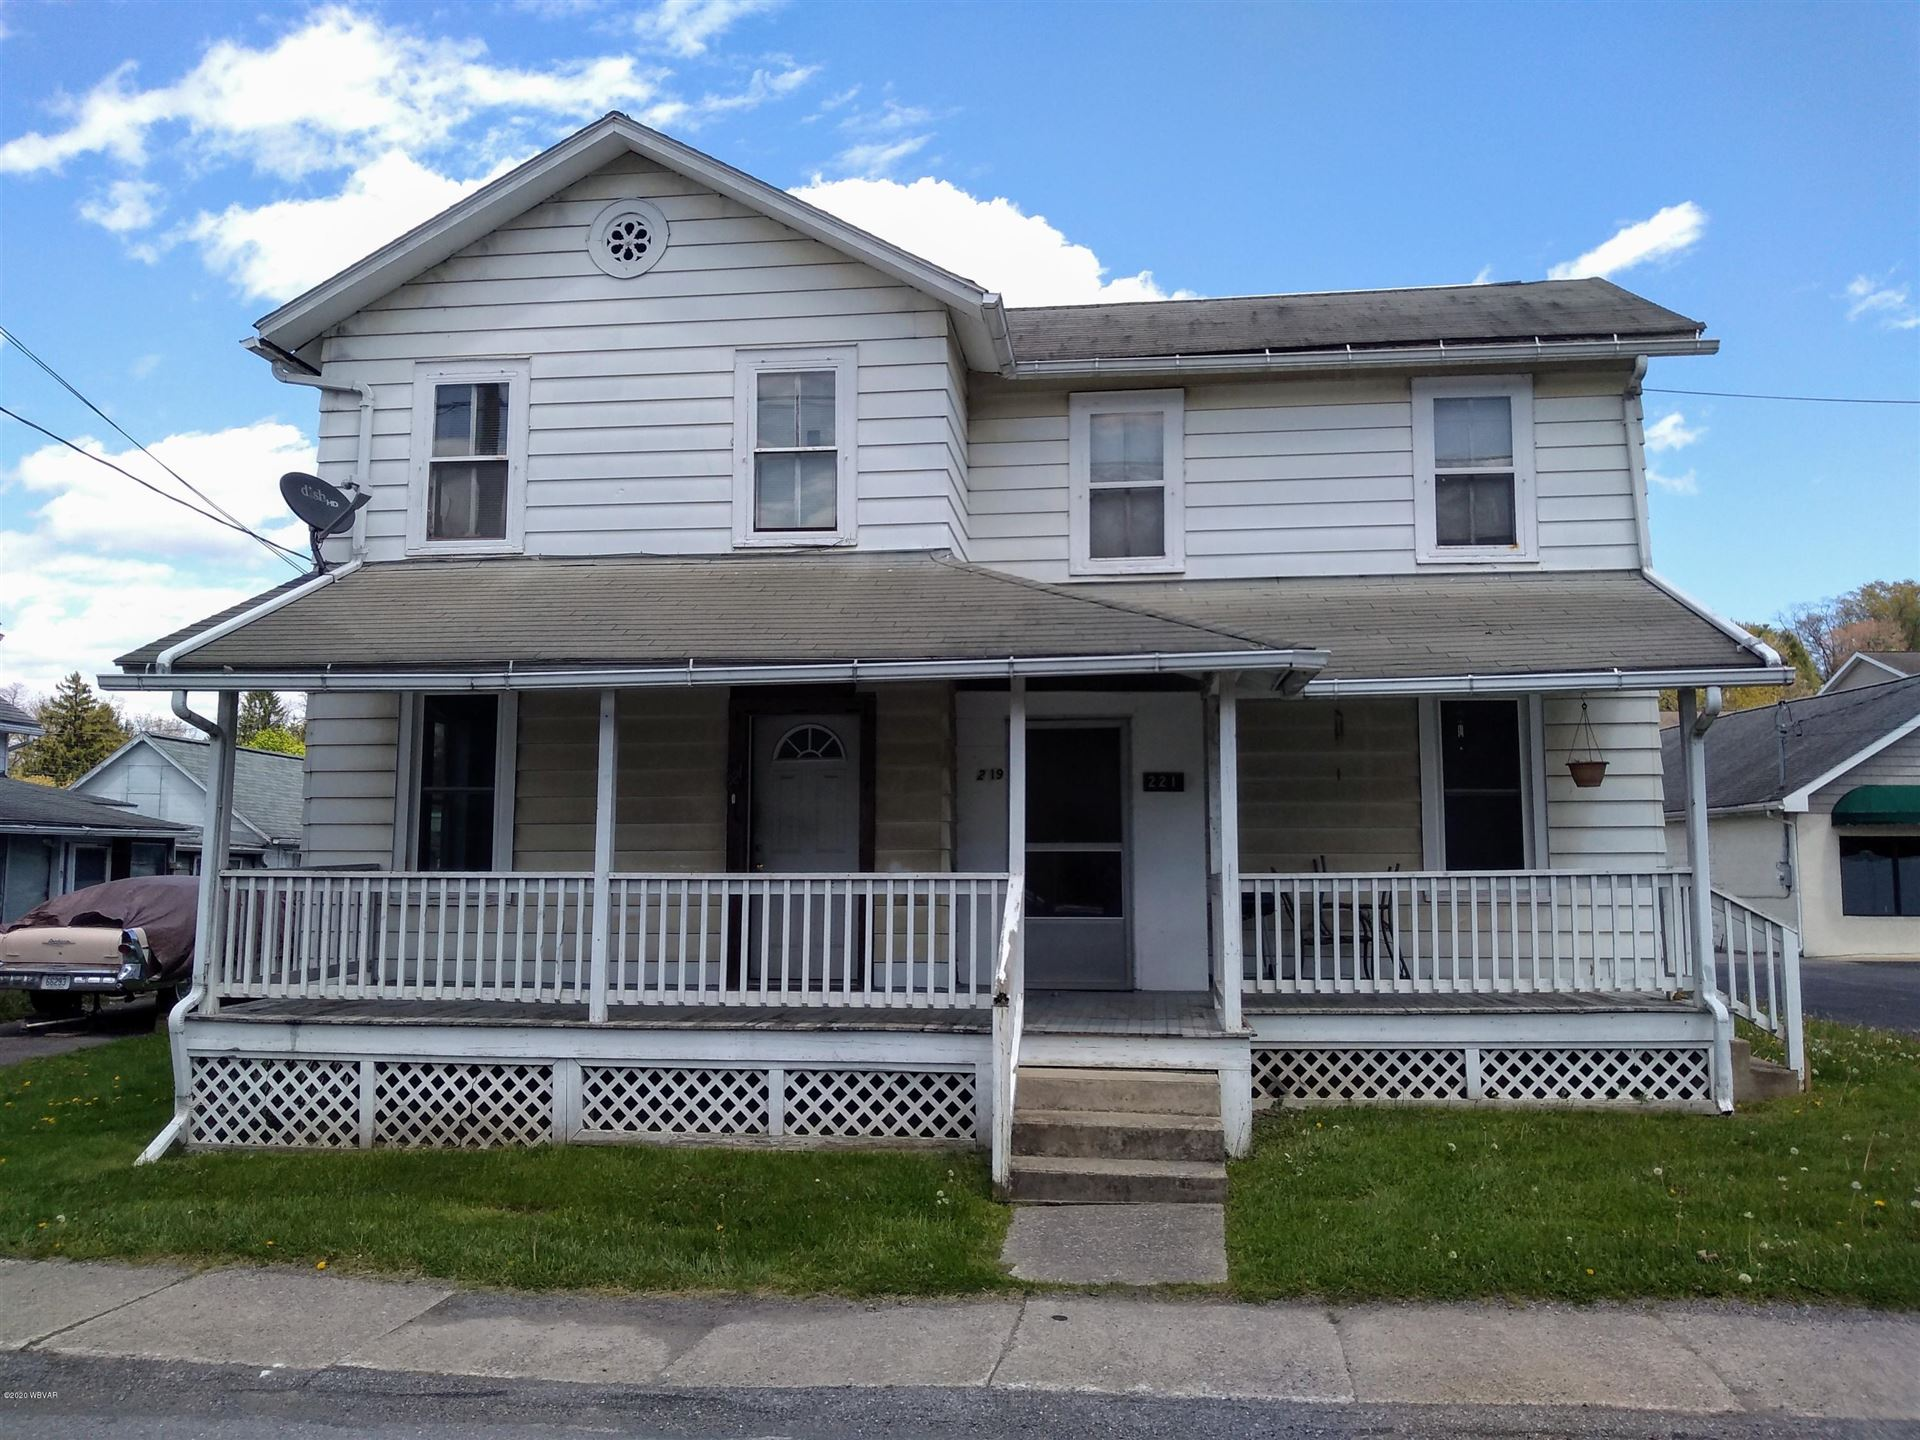 221 VALLEY STREET, South Williamsport, PA 17702 - #: WB-89996